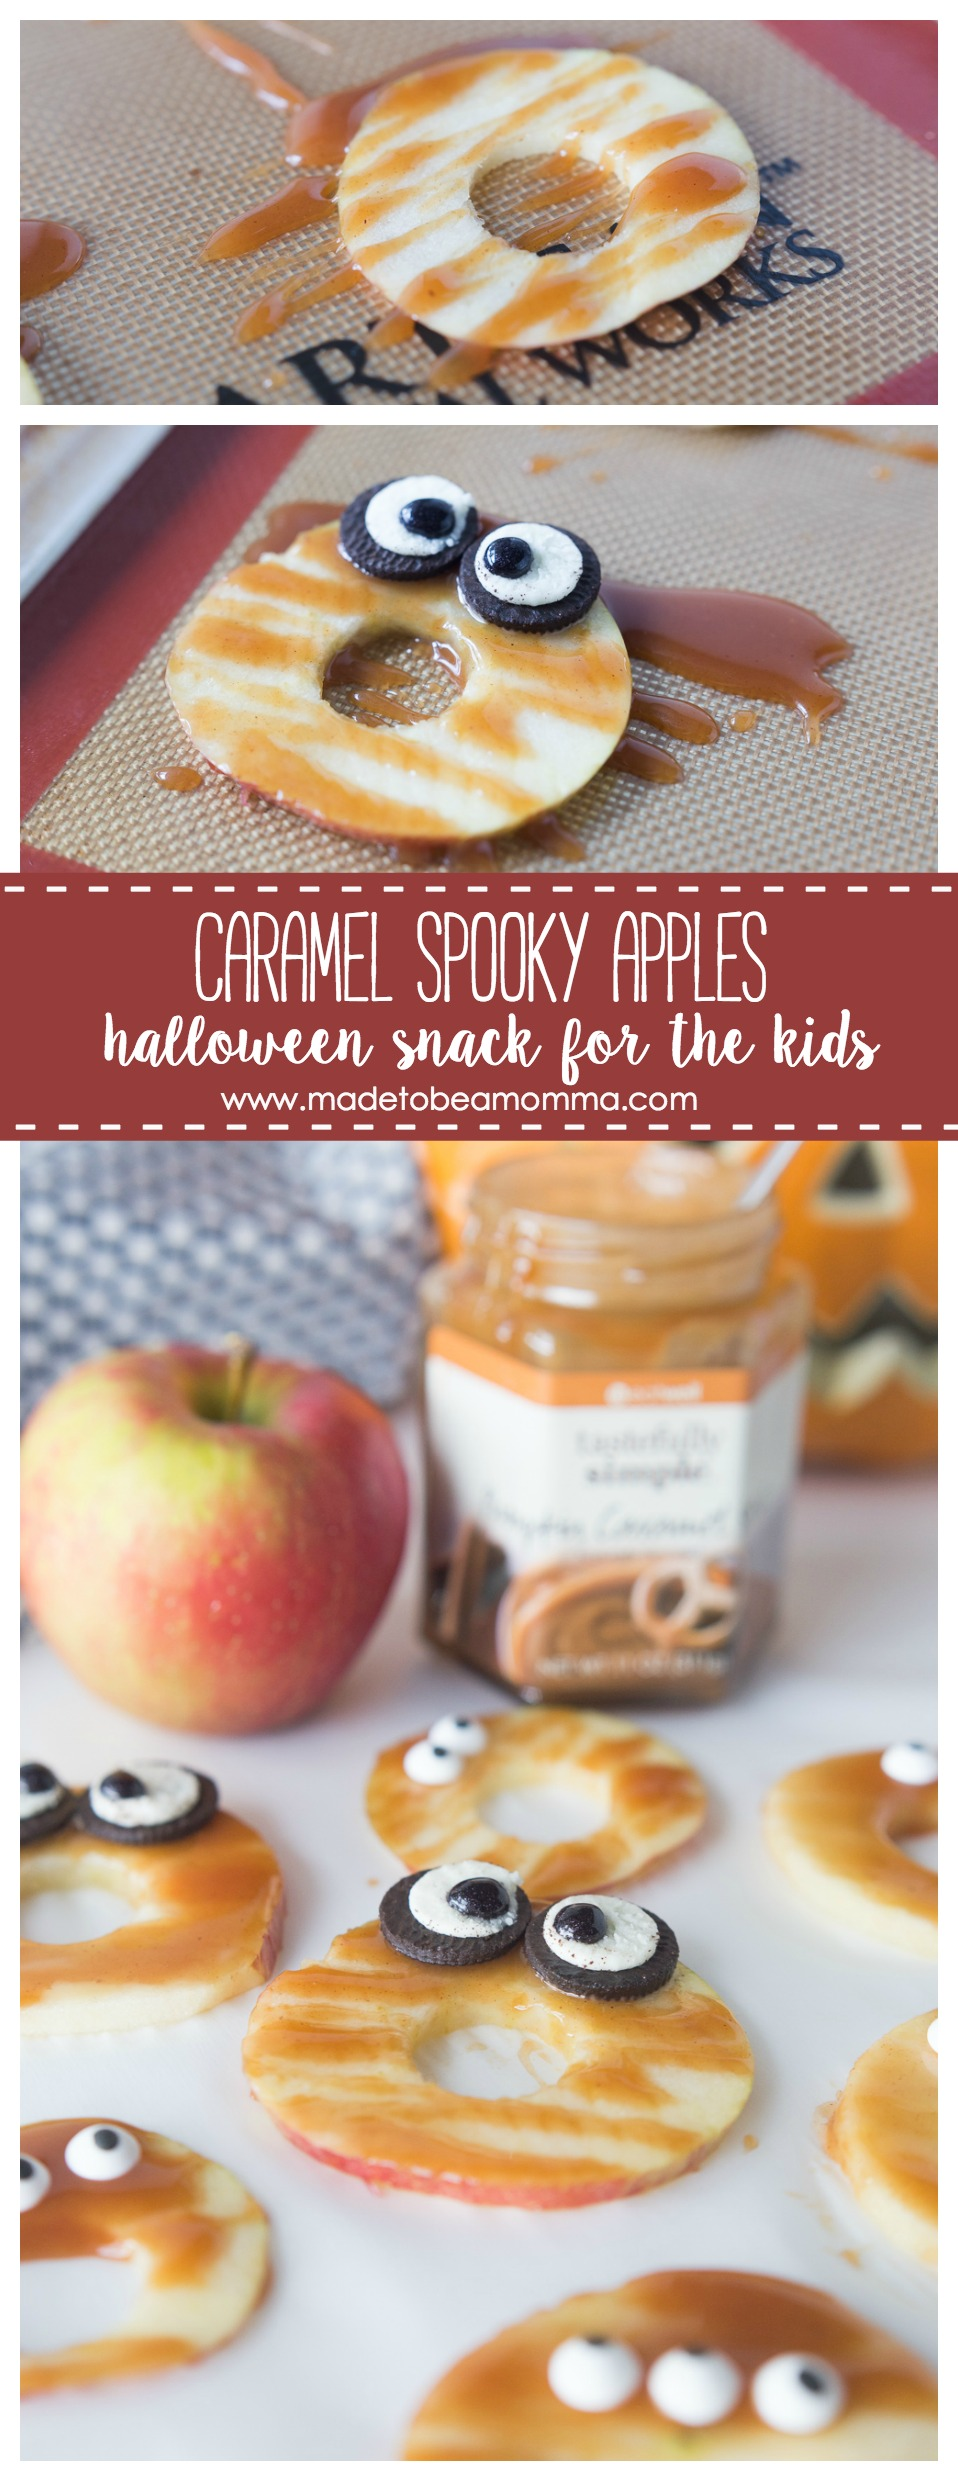 These Caramel Spooky Apples are a fun and delicious Halloween treat for the kids. The pumpkin caramel sauce is bursting will all your favorite fall flavors! www.madetobeamomma.com